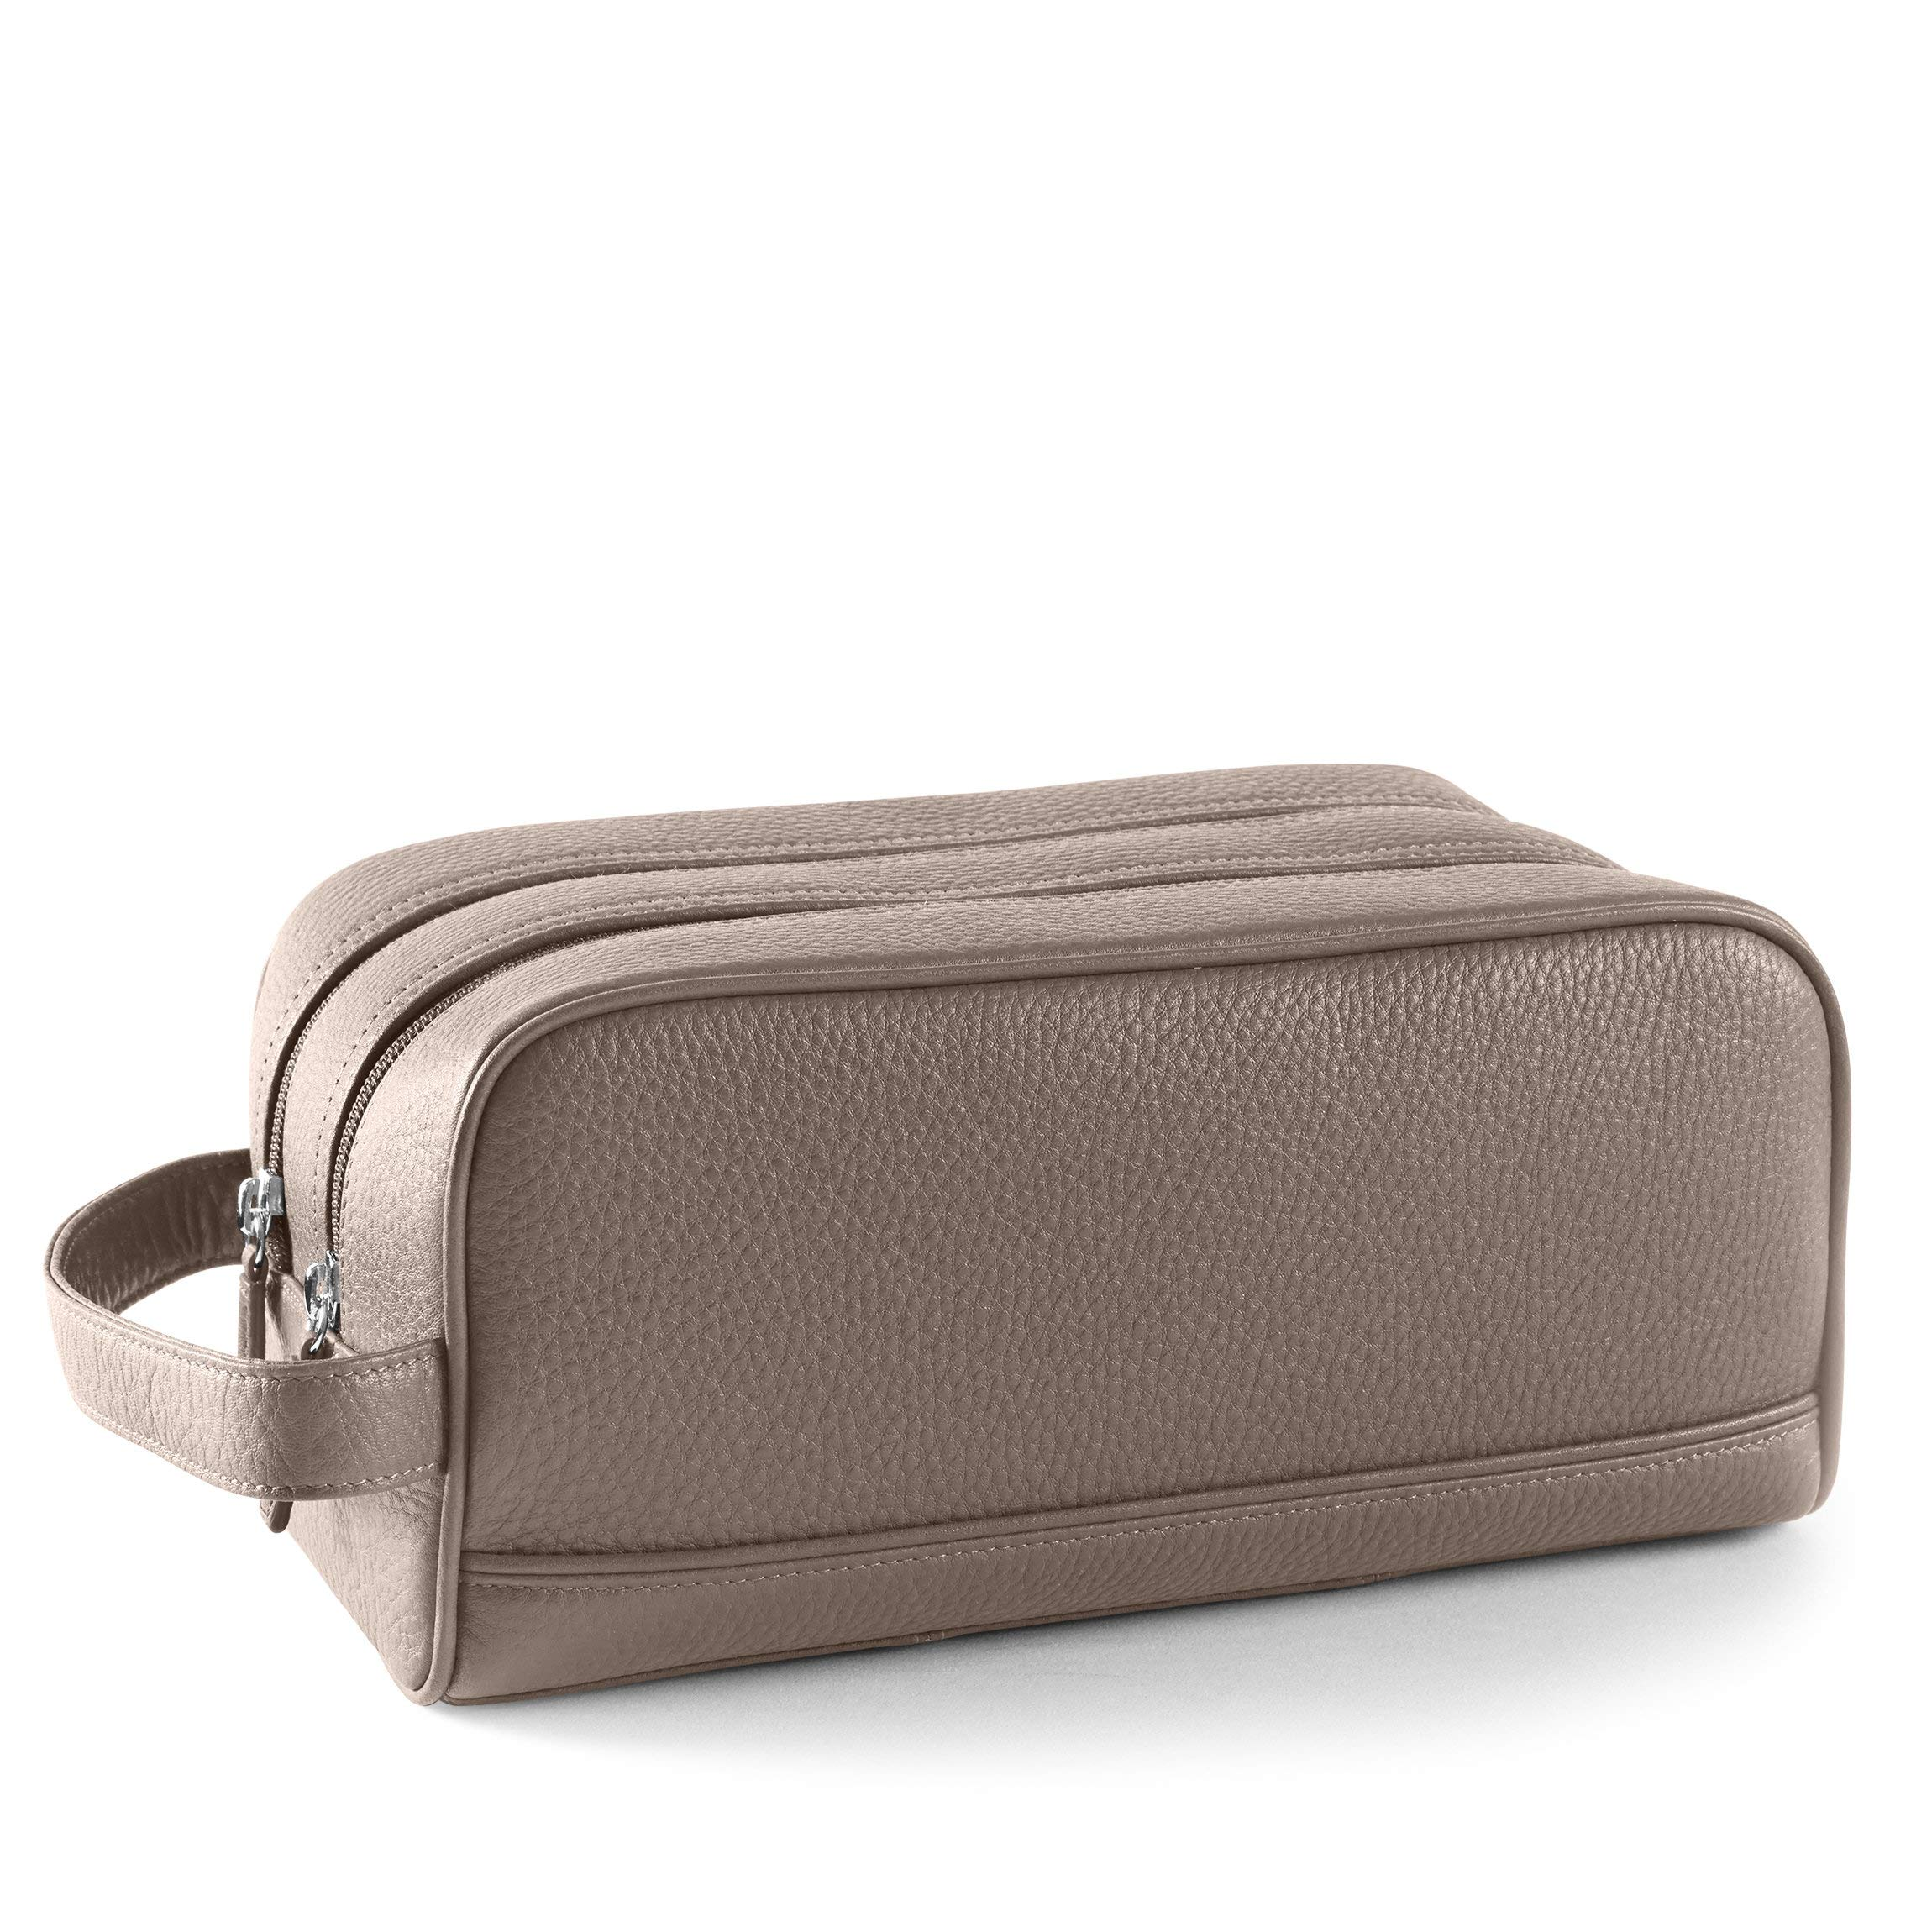 Leatherology Double Zip Toiletry Bag - Full Grain Leather Leather - Taupe (Beige)